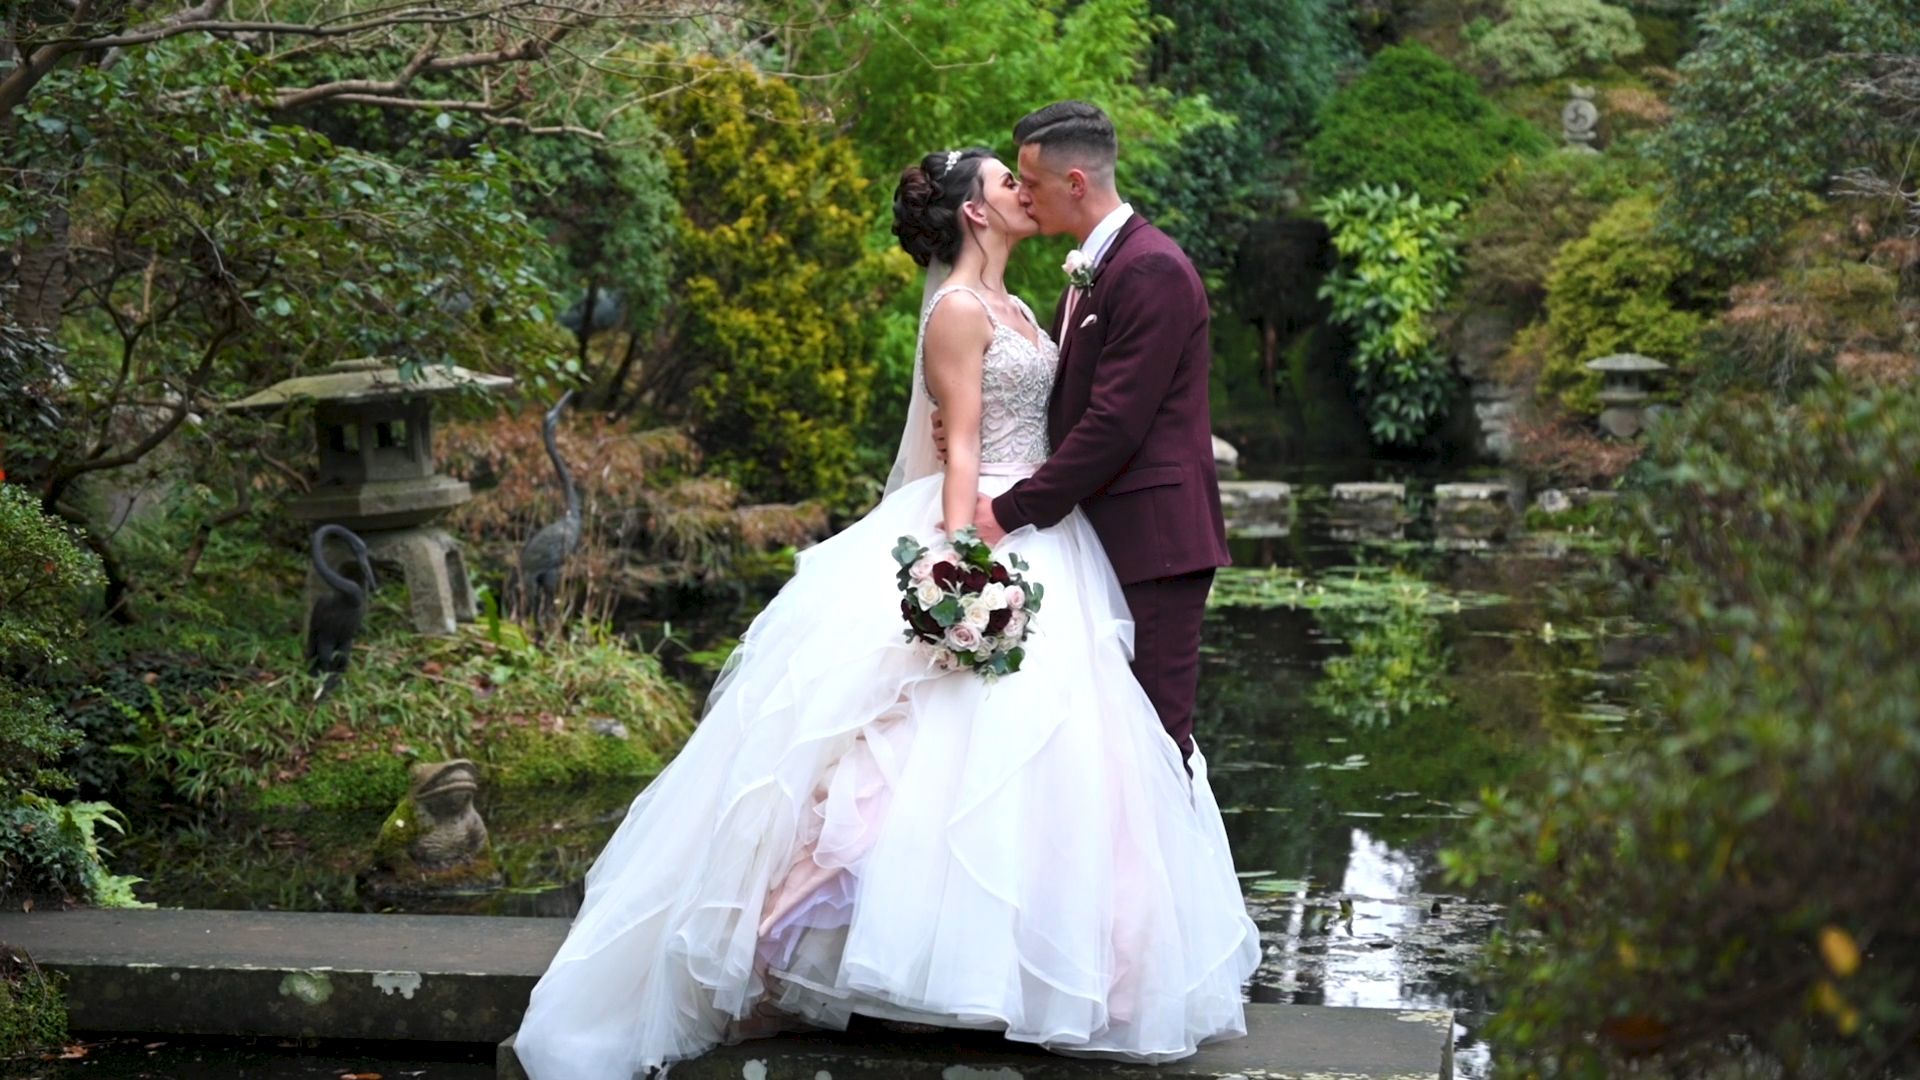 Married couple stood on a small bridge in the gardens of The Italian Villa